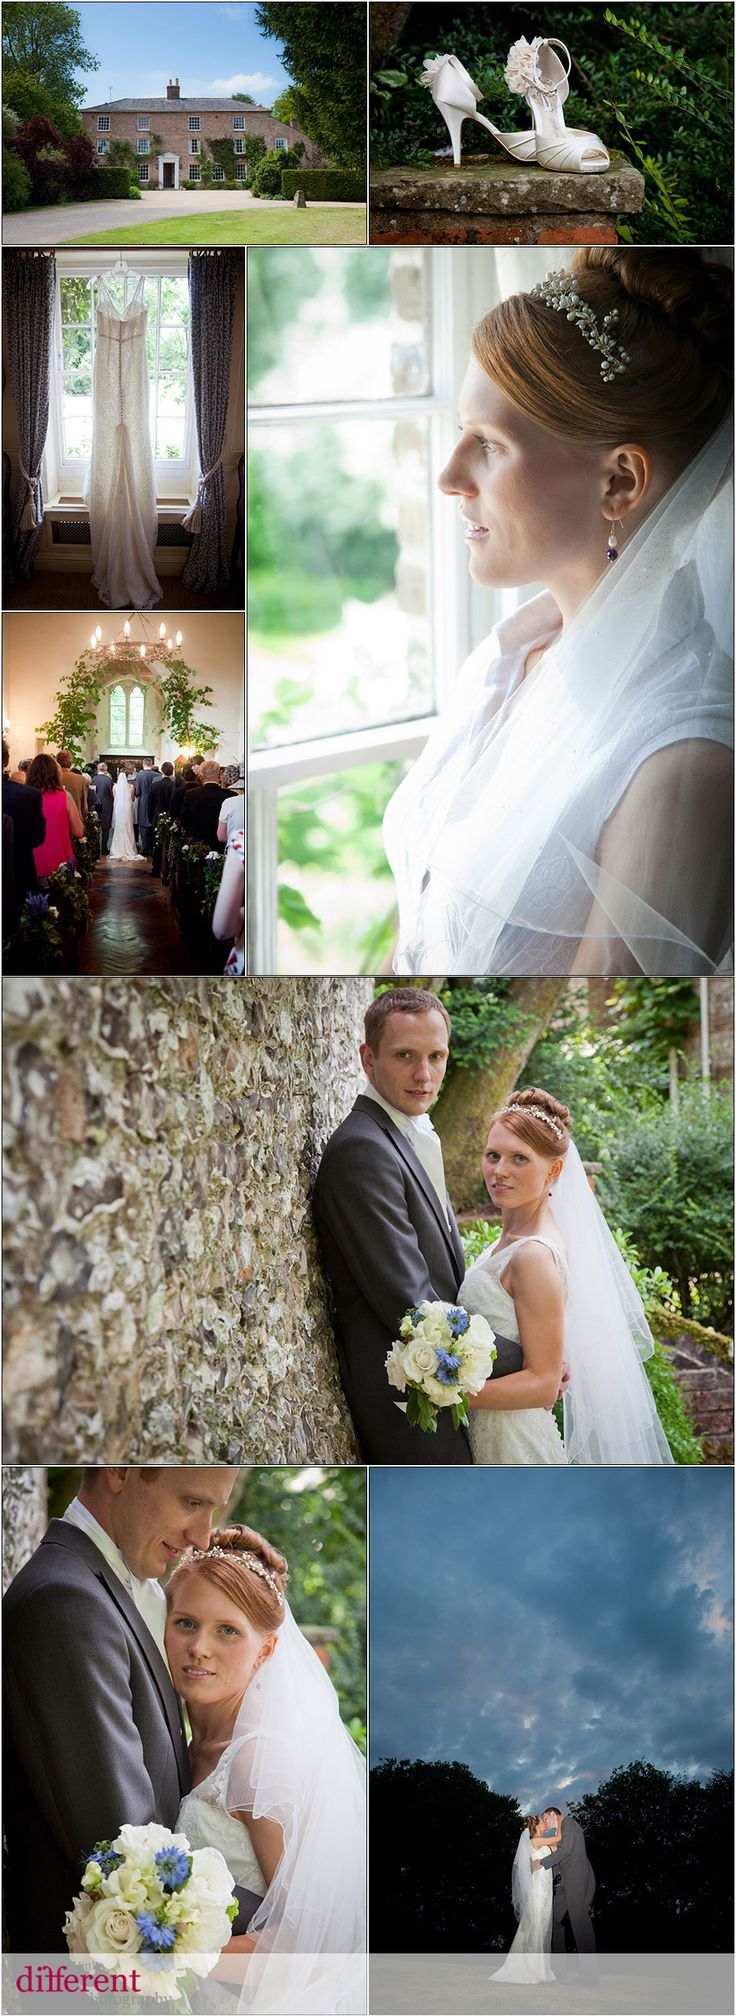 budget wedding photography west midlands%0A Wedding photography at Combe Manor  Inkpen  Berkshire for Alex and Aidan